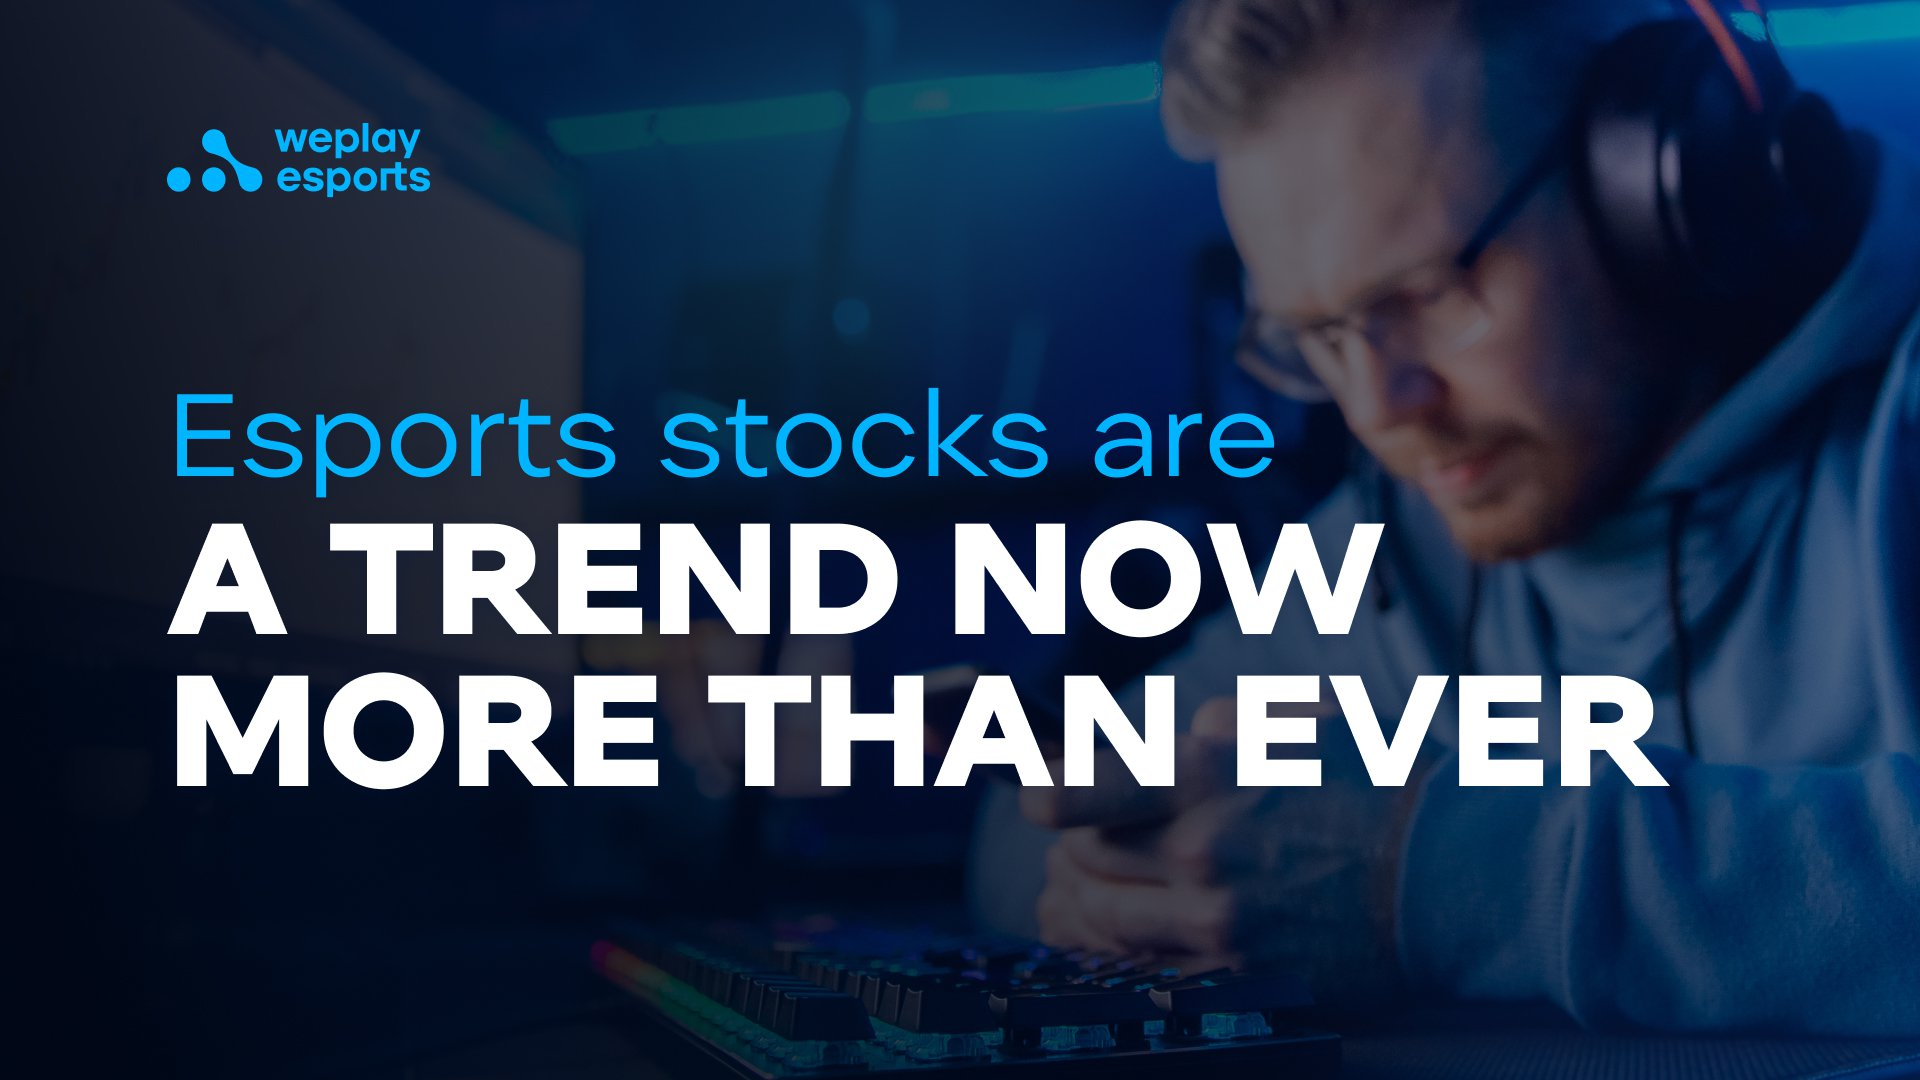 Esports stocks are a trend now more than ever